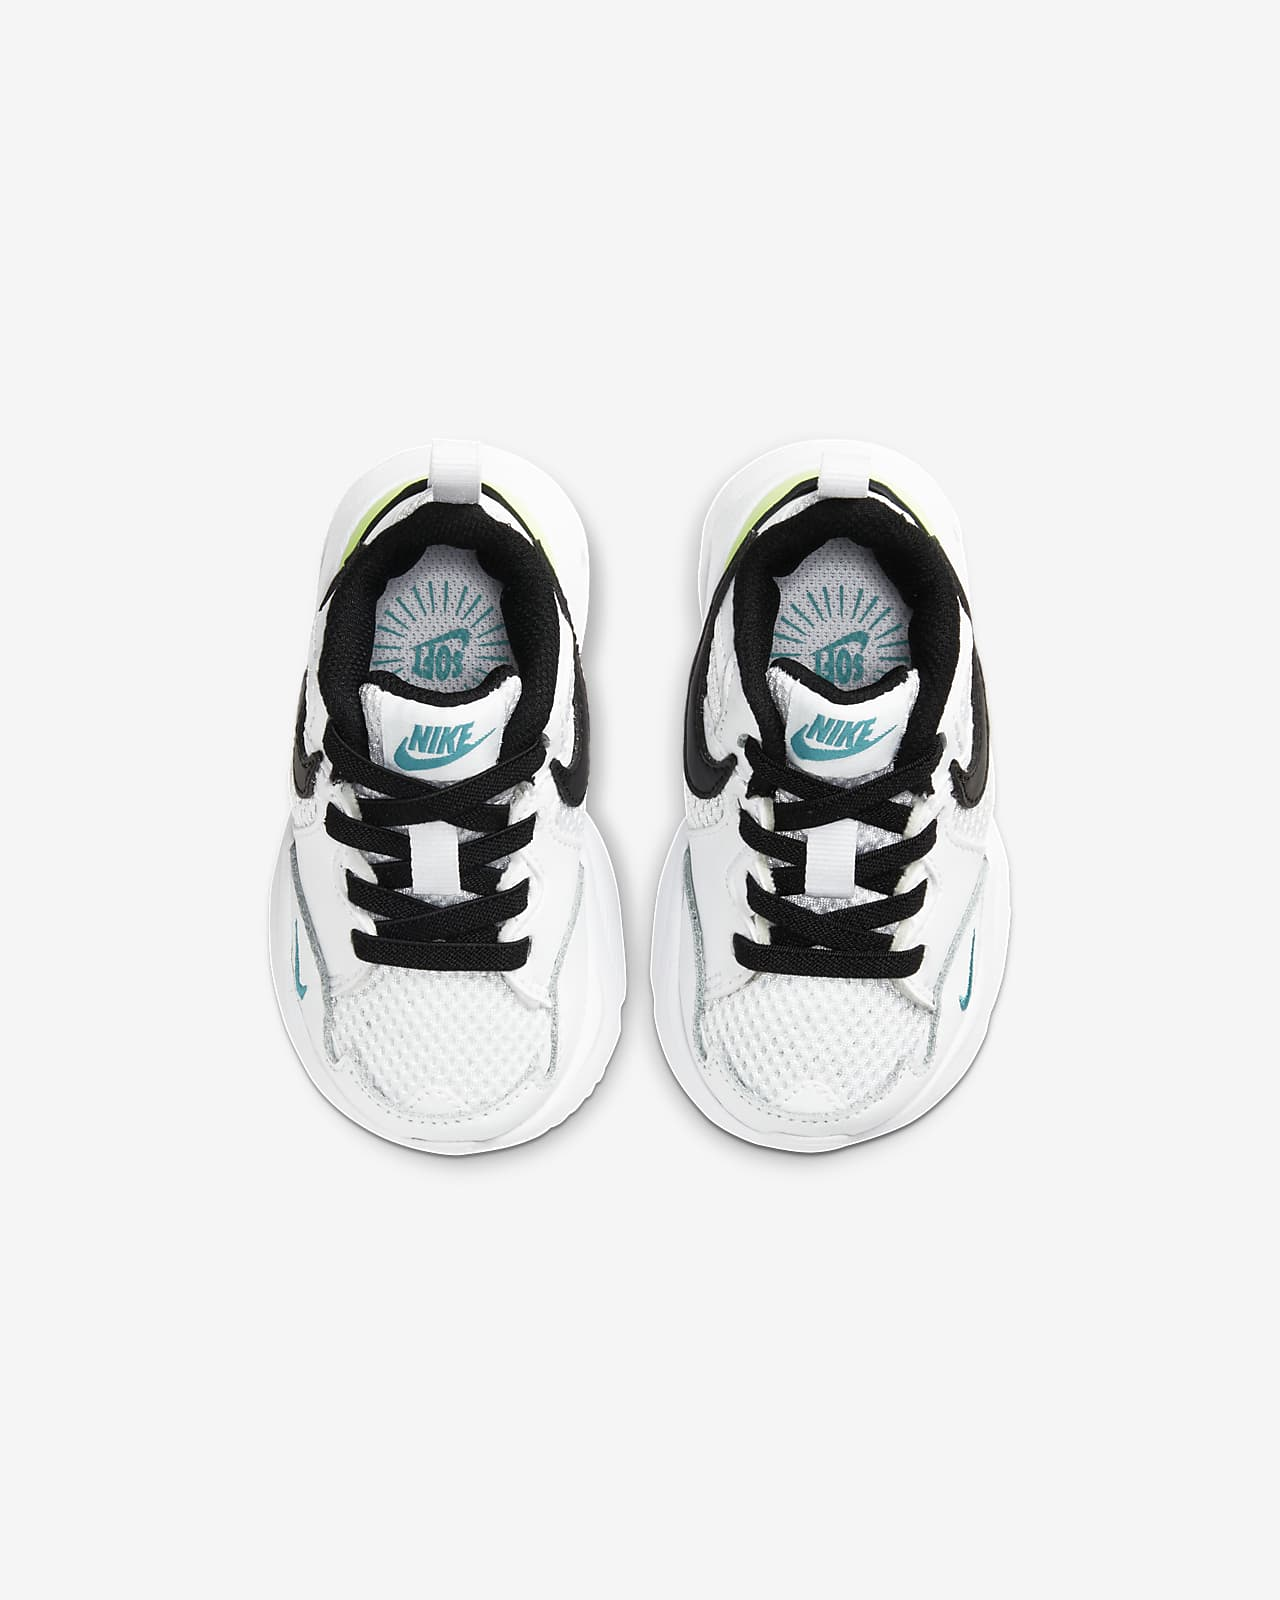 Nike Air Max Fusion Baby and Toddler Shoe